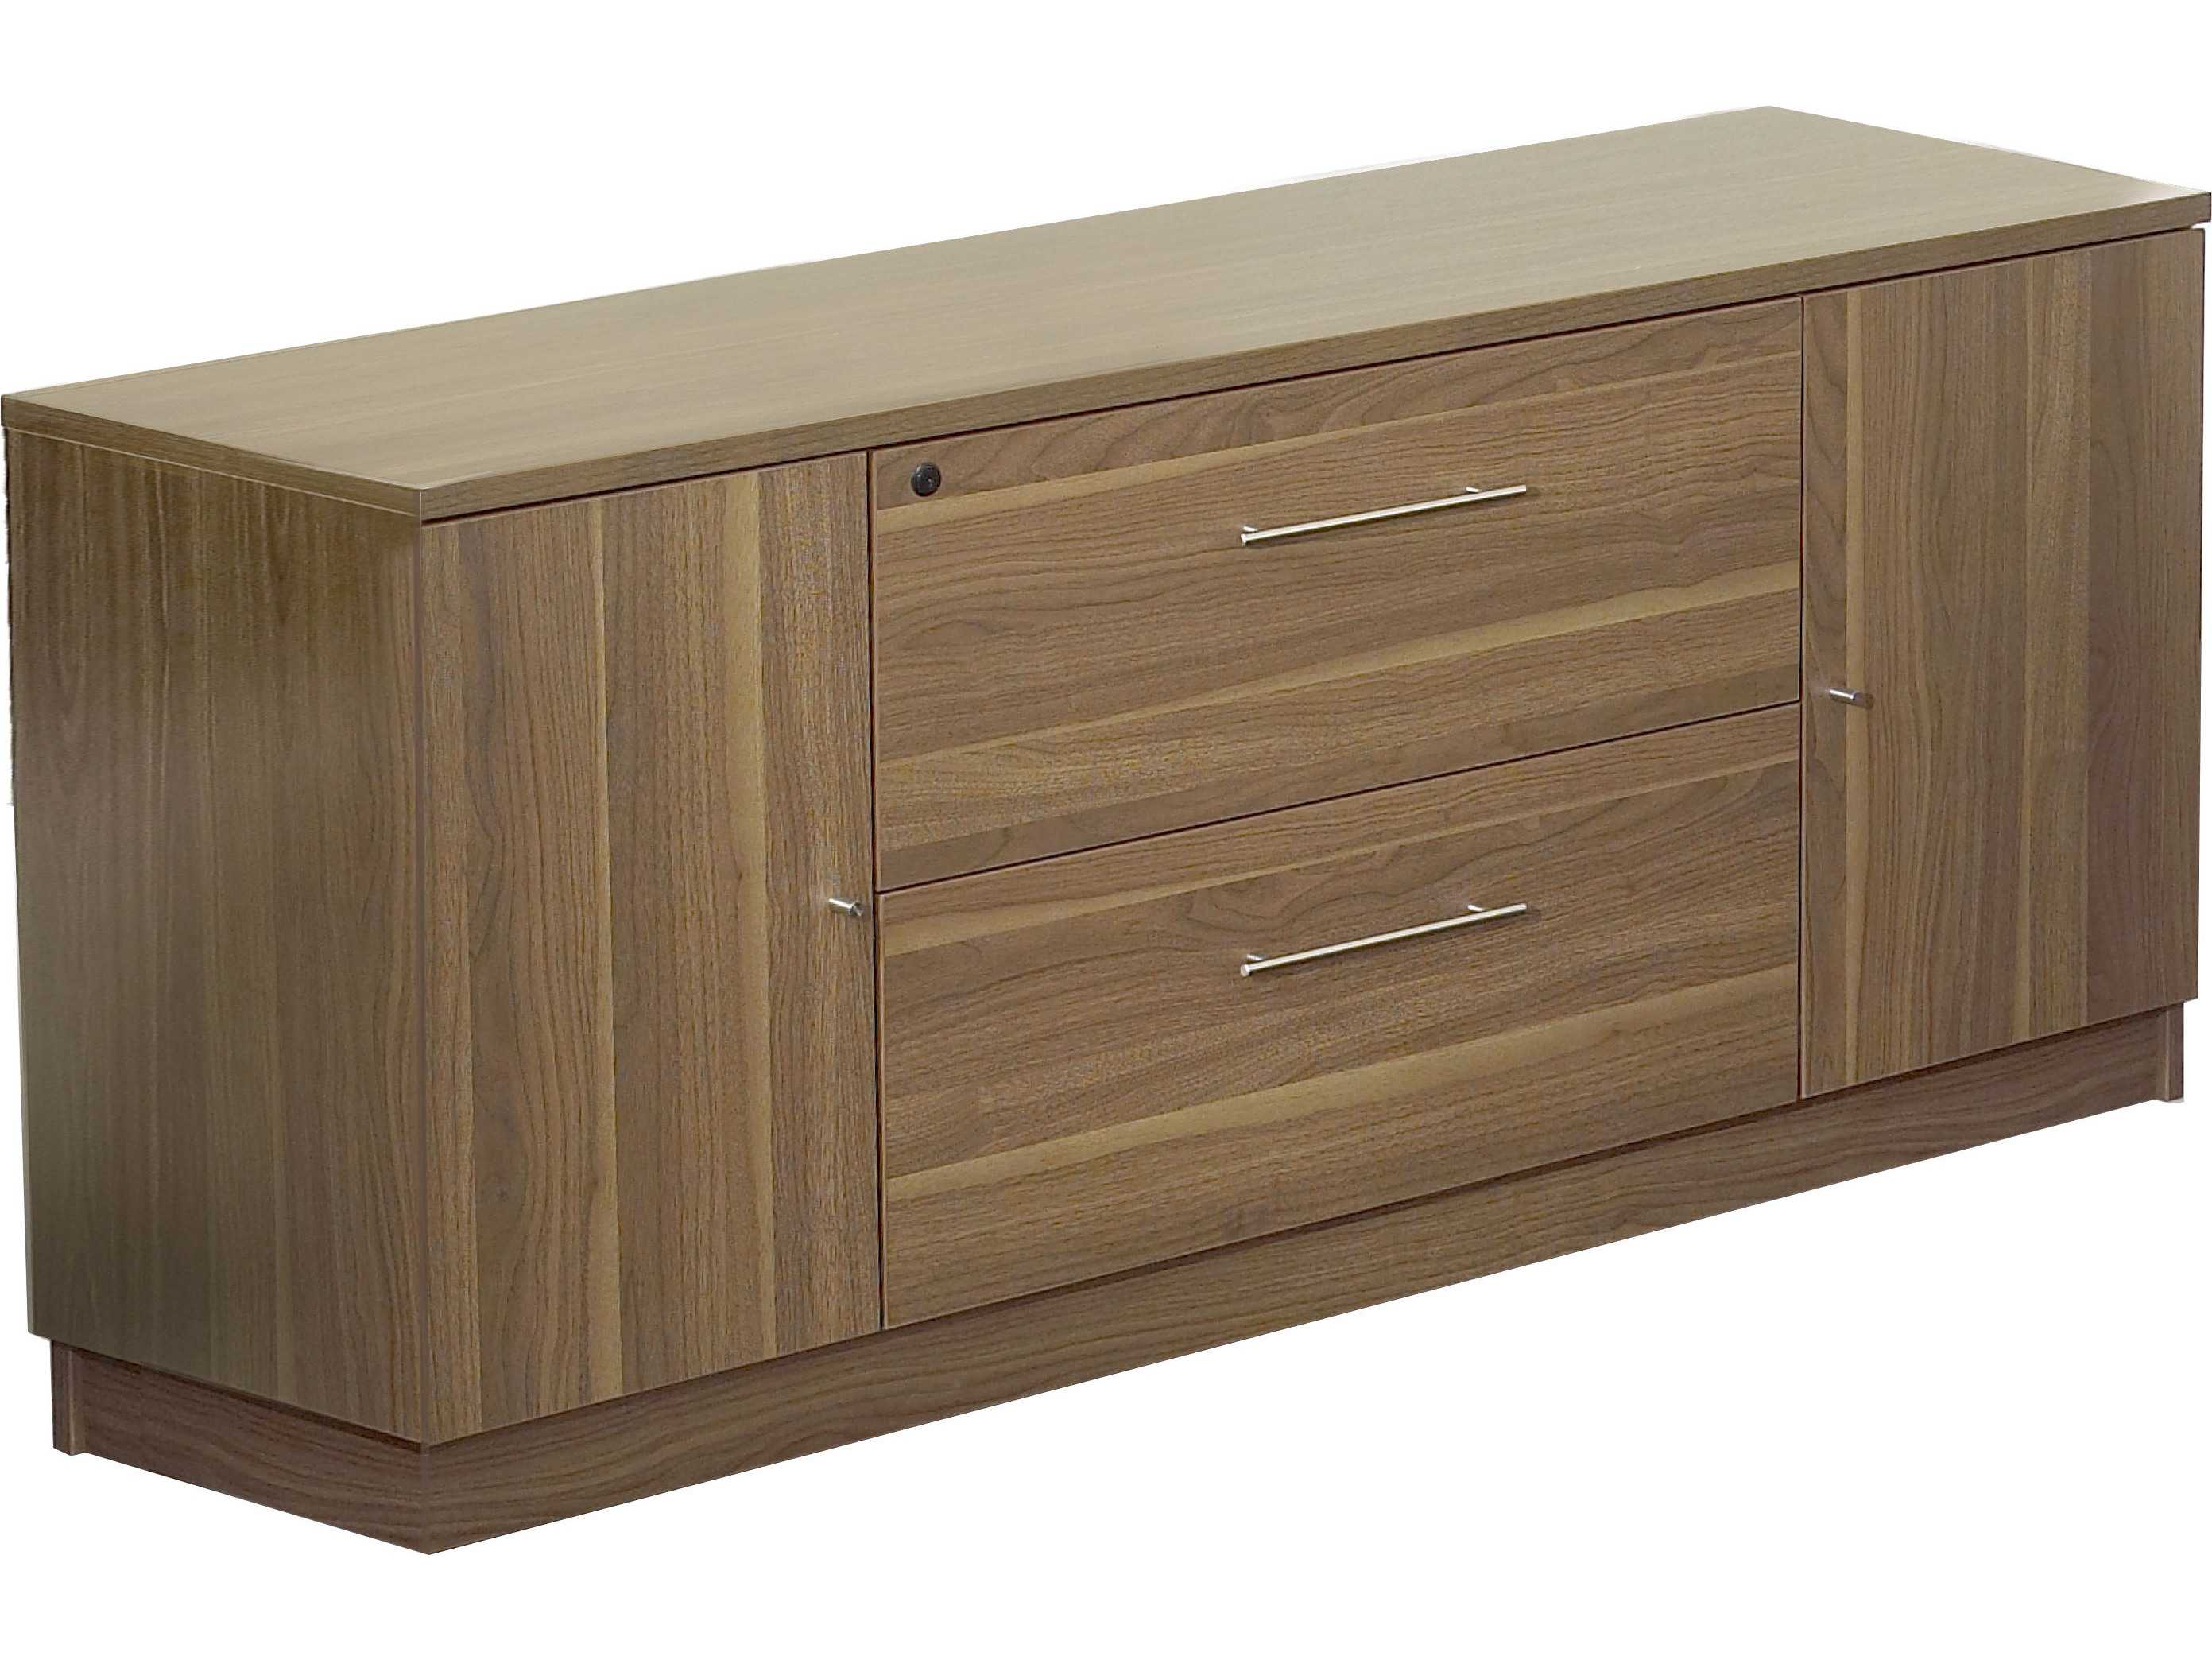 Unique Furniture 100 Series Walnut Credenza File Cabinet